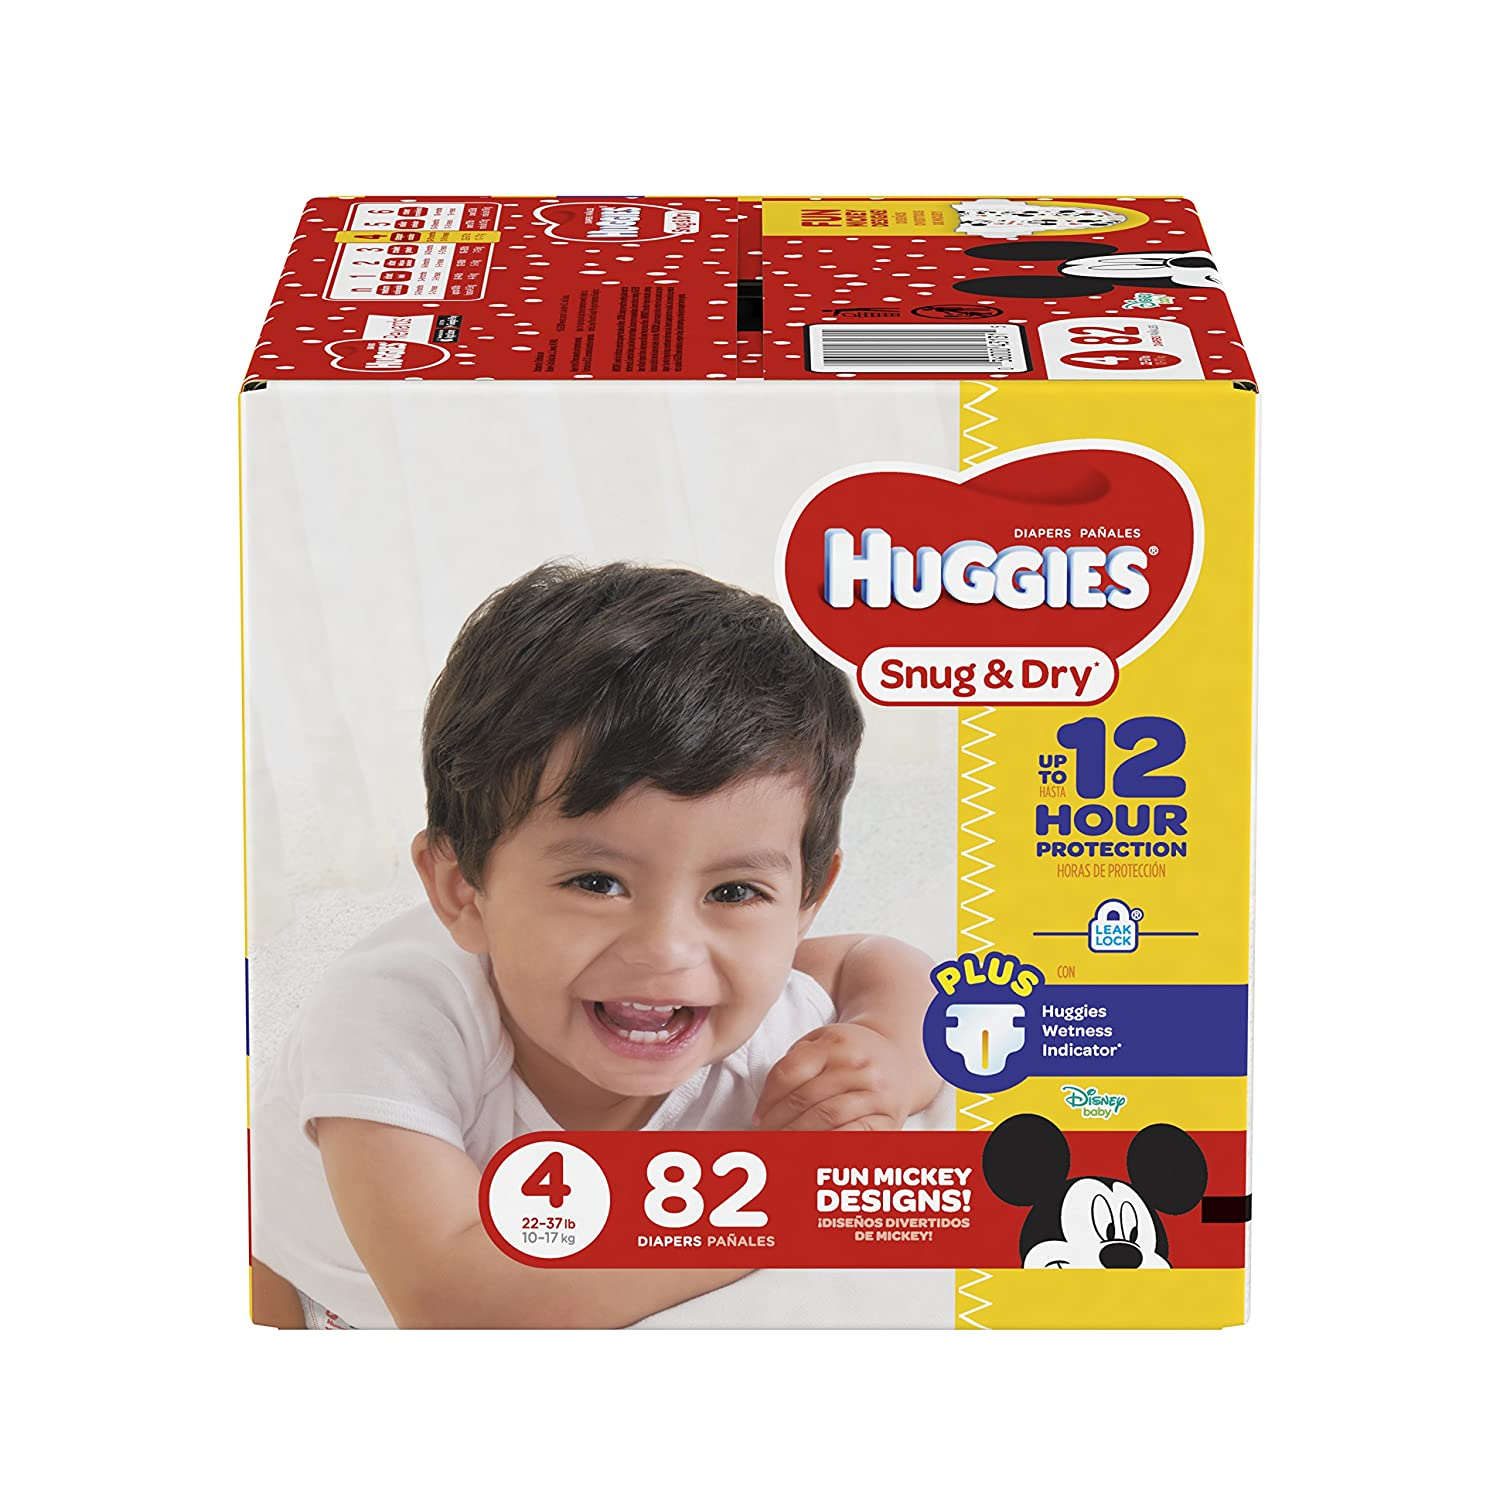 Amazon.com: HUGGIES Snug & Dry Diapers, Size 4, 82 Count BIG PACK (Packaging May Vary): Health & Personal Care